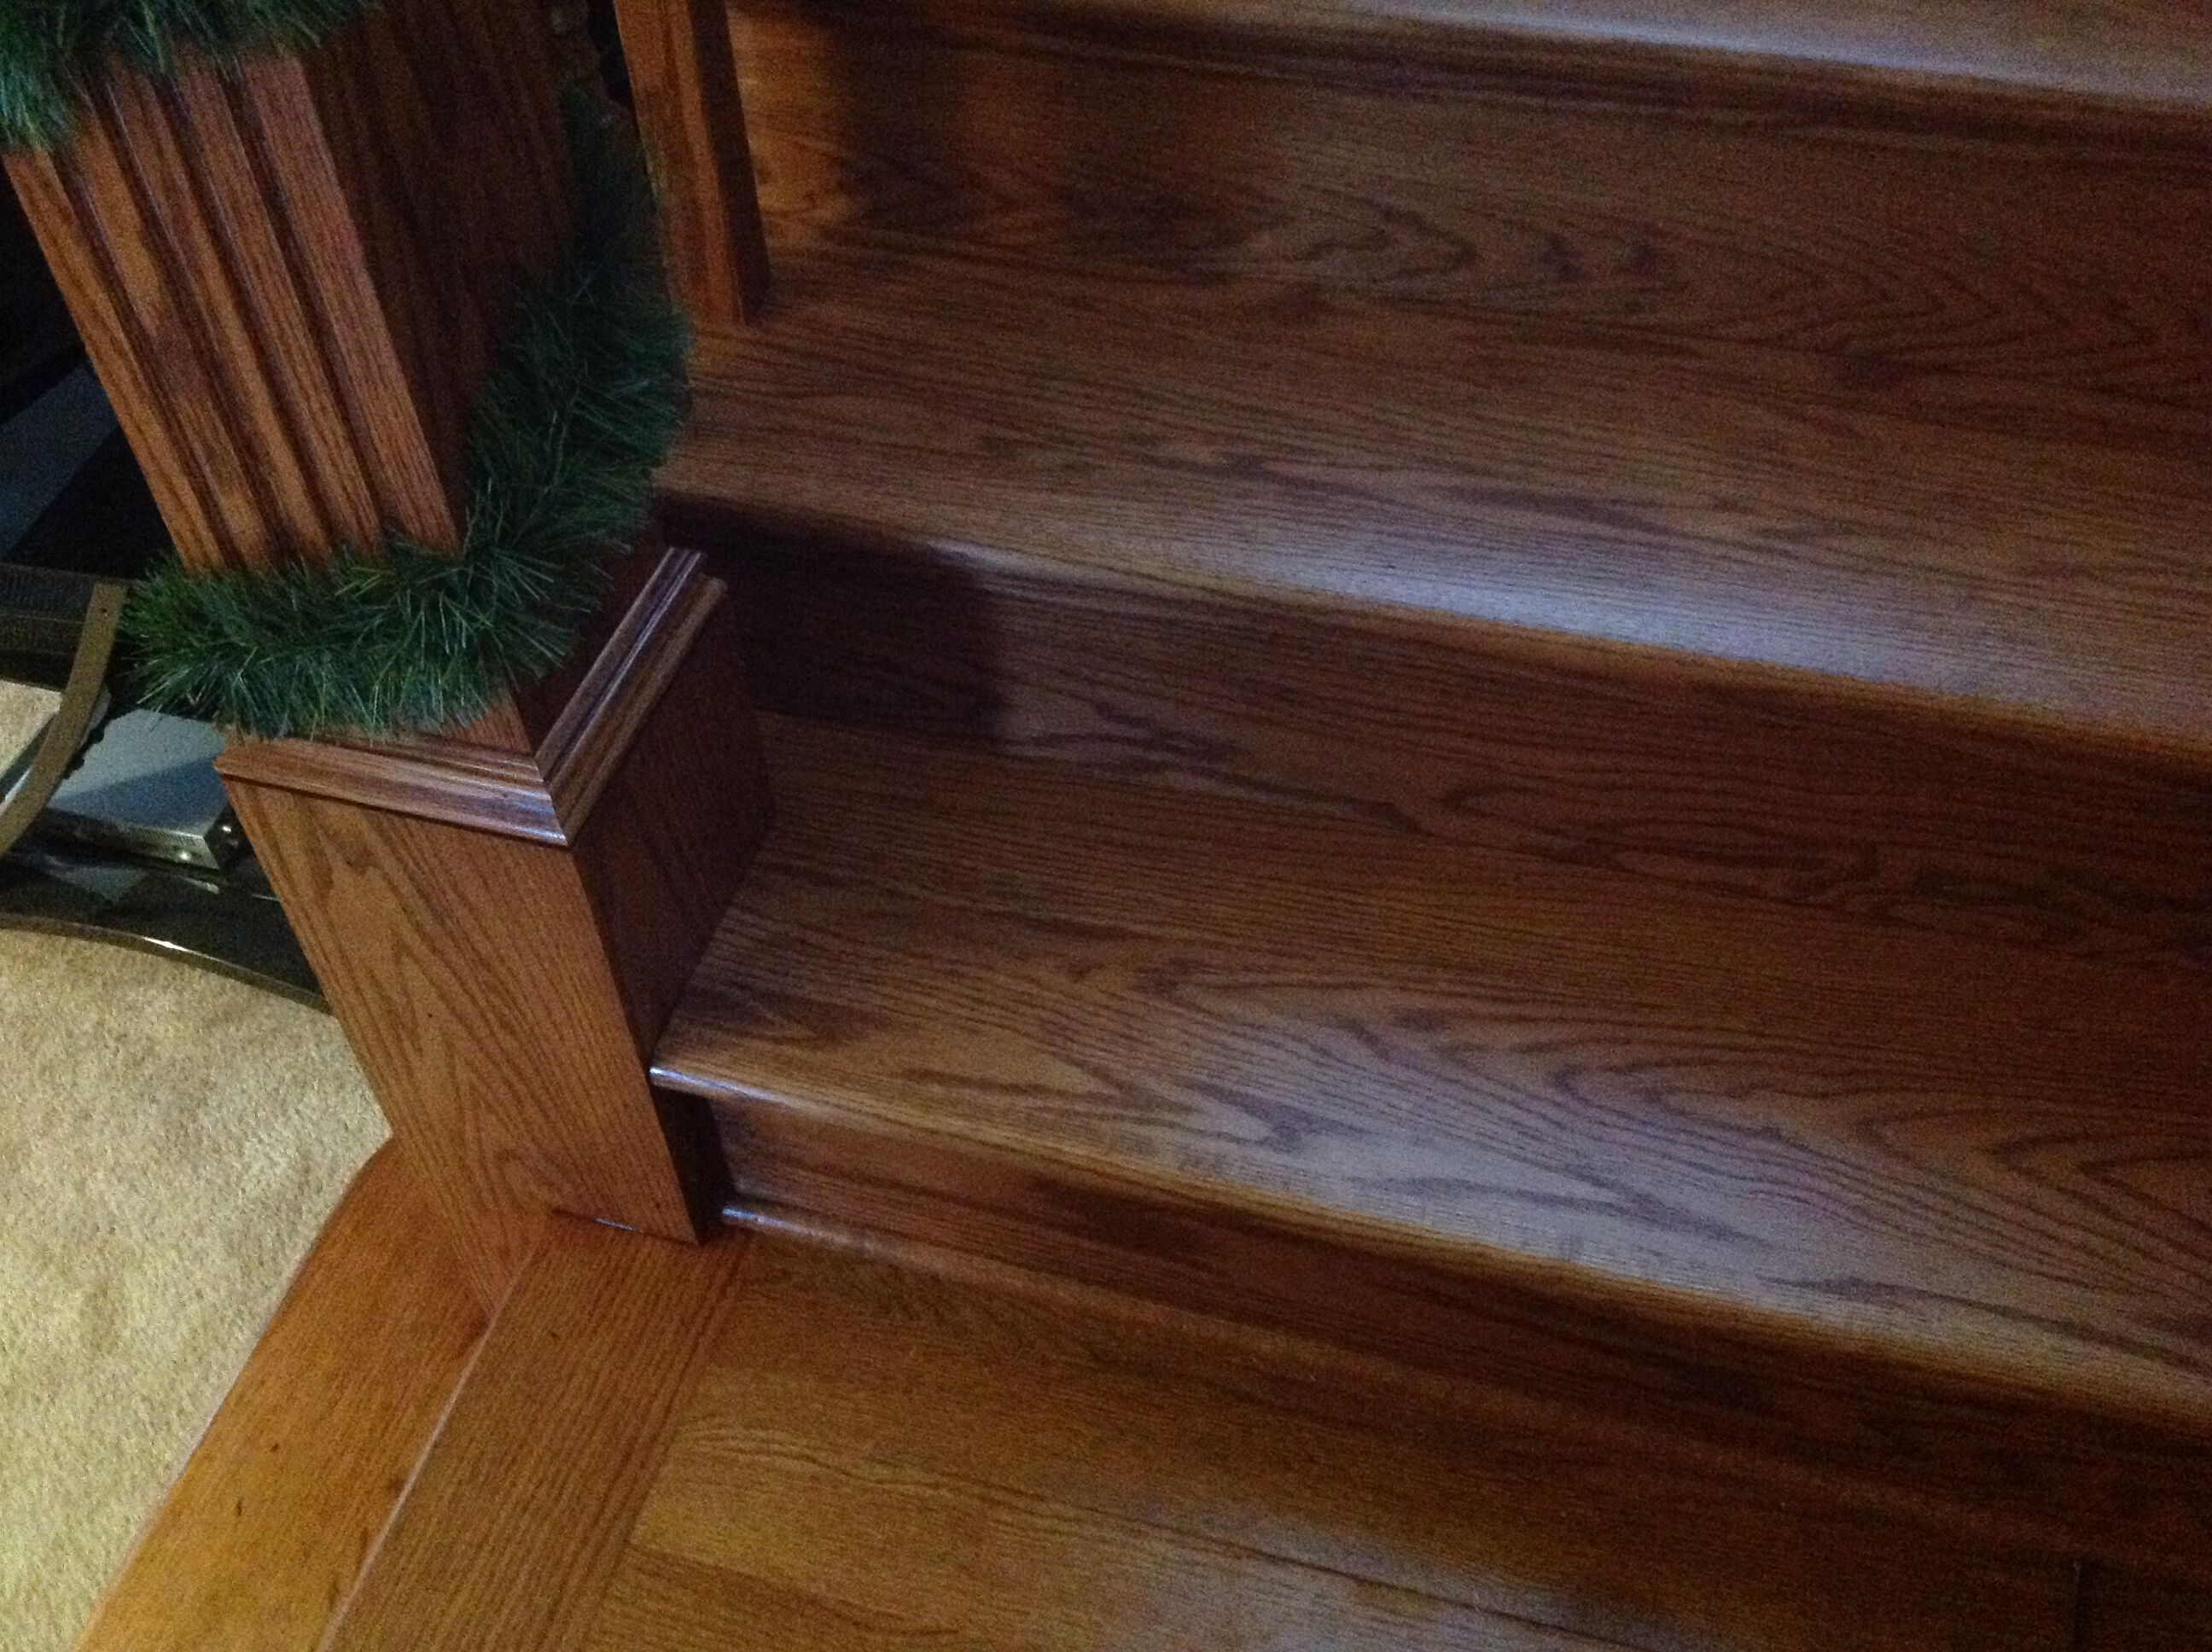 Traditional Red Oak Stair Treads And Risers Detail.